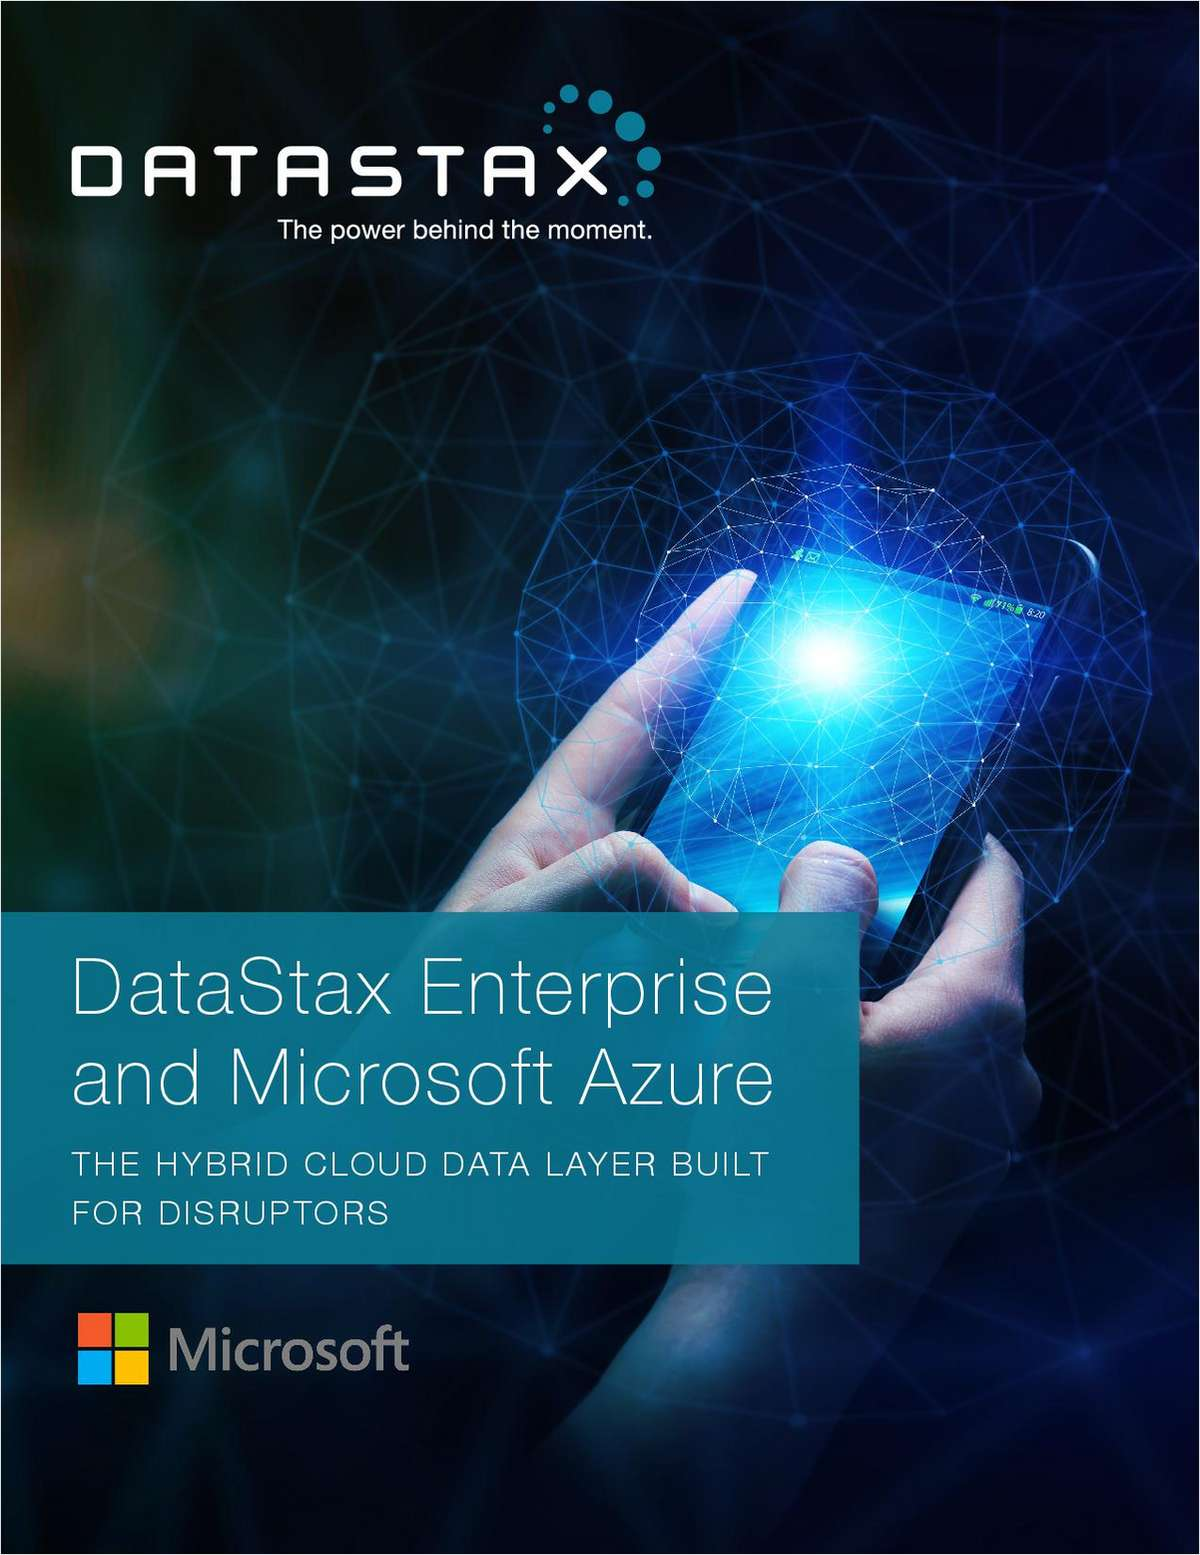 DataStax Enterprise and Microsoft Azure: The Hybrid Cloud Data Layer